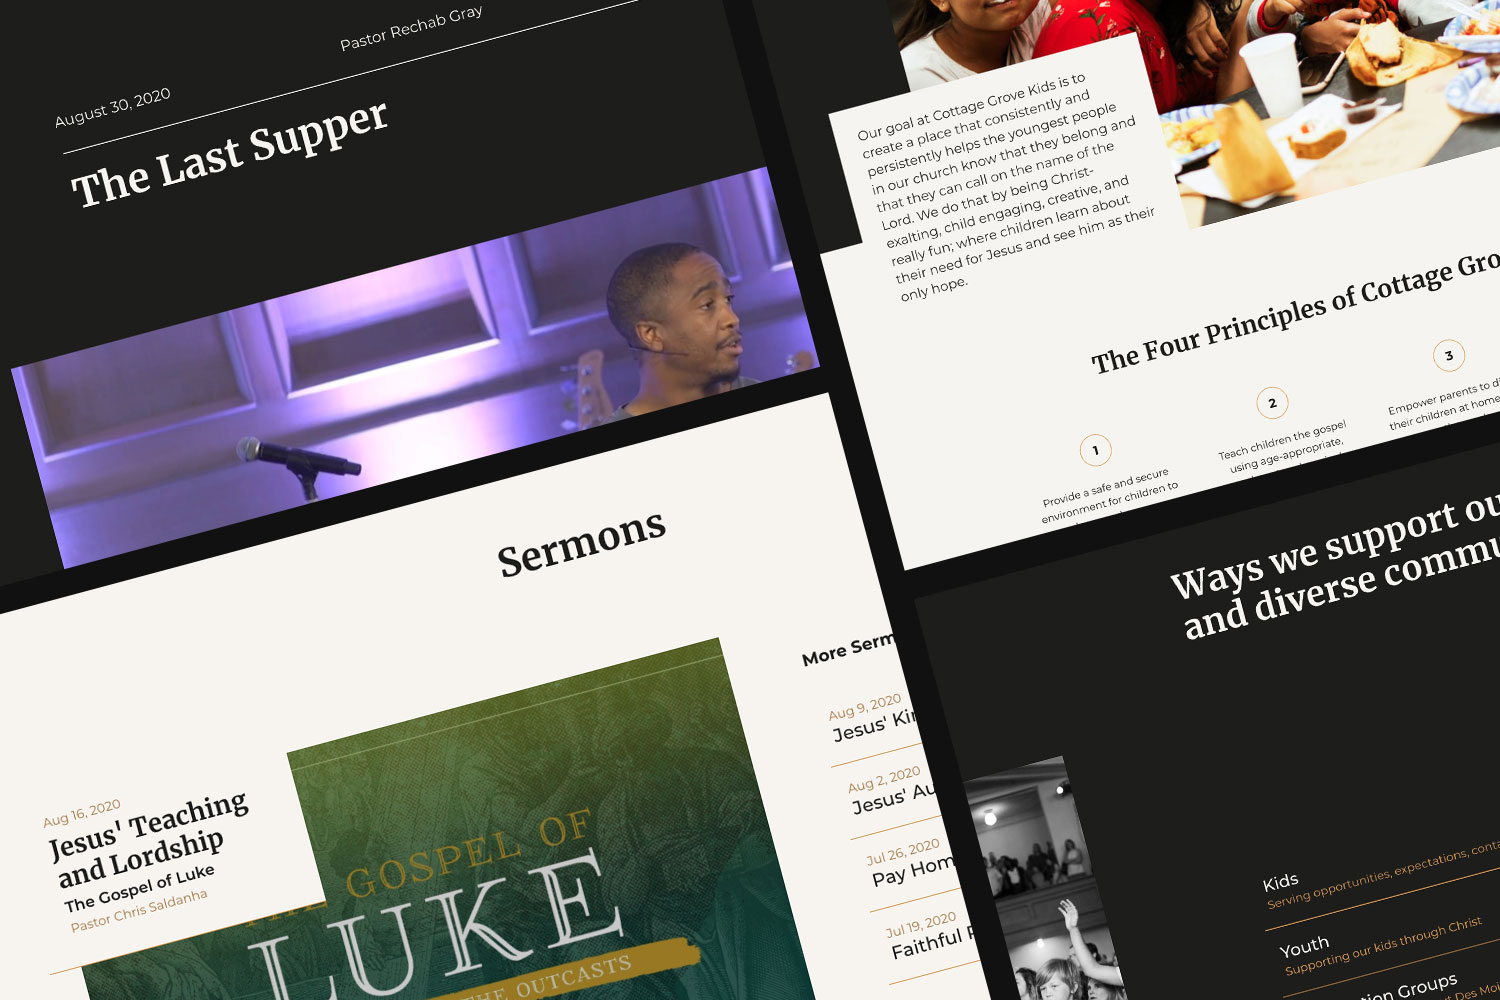 Screenshots of Cottage Grove sermon page, lists and kids page